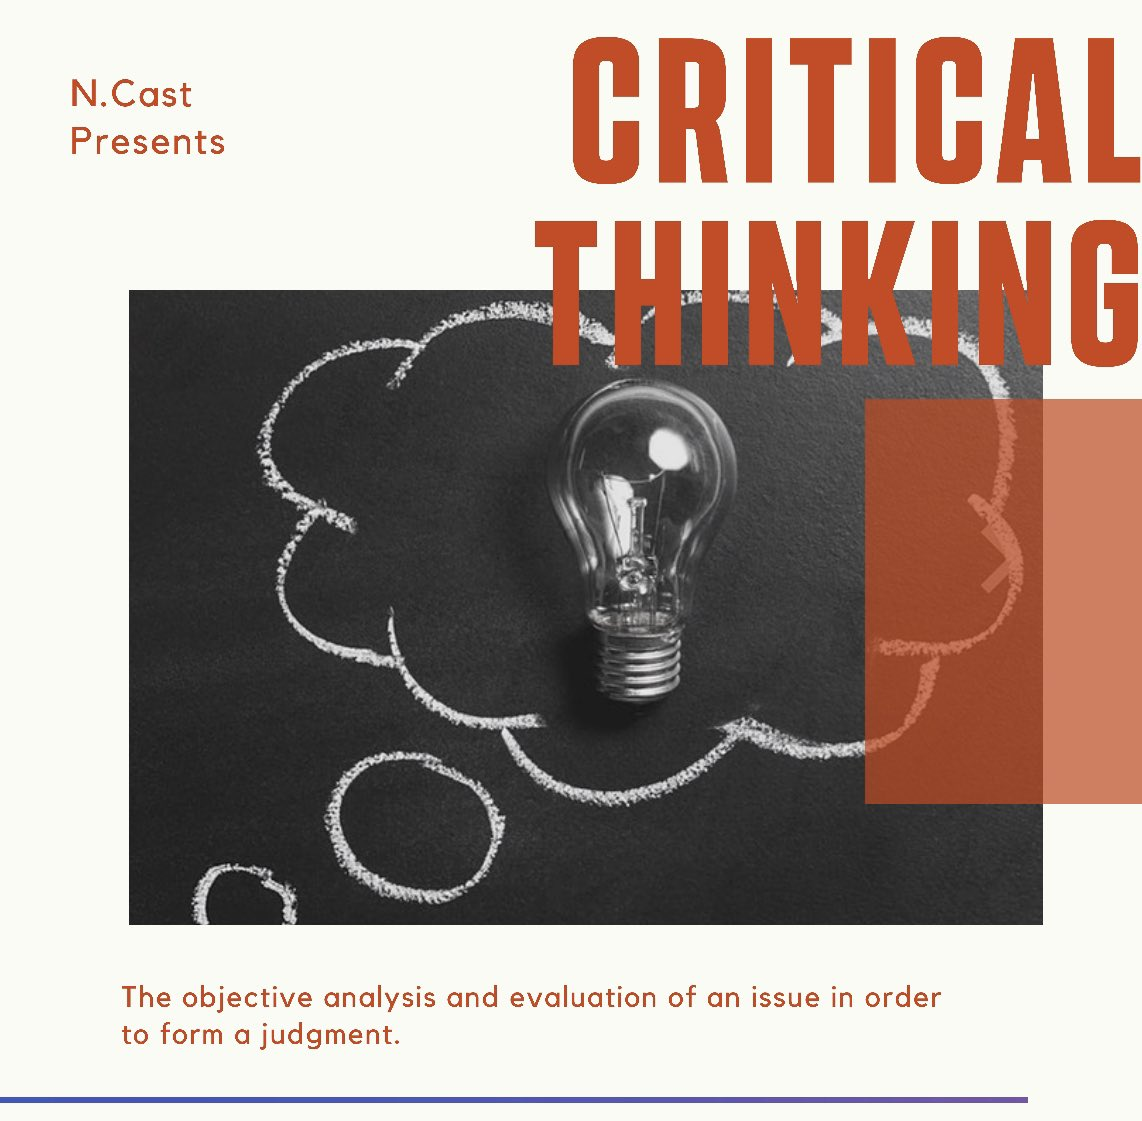 Up Next: Critical Thinking  #podcast #podcaster #mediapic.twitter.com/9EhhE9dMzr